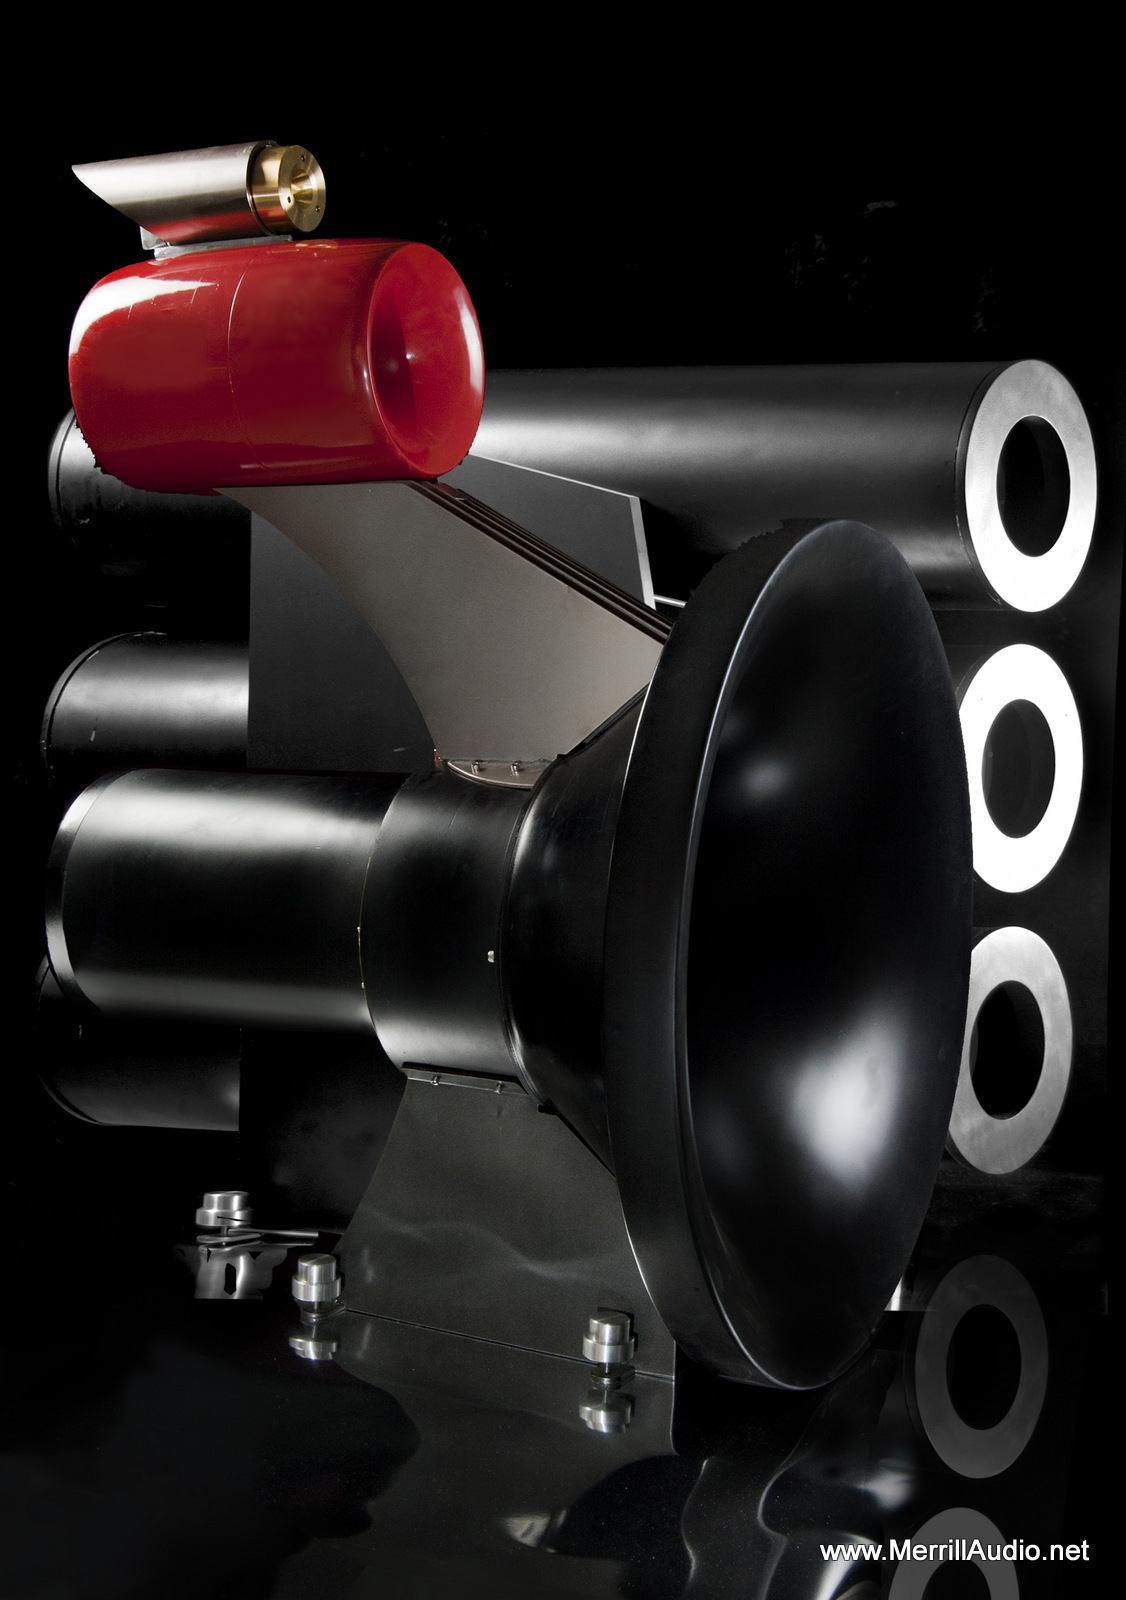 Stacatto Horn Speakers with Bass